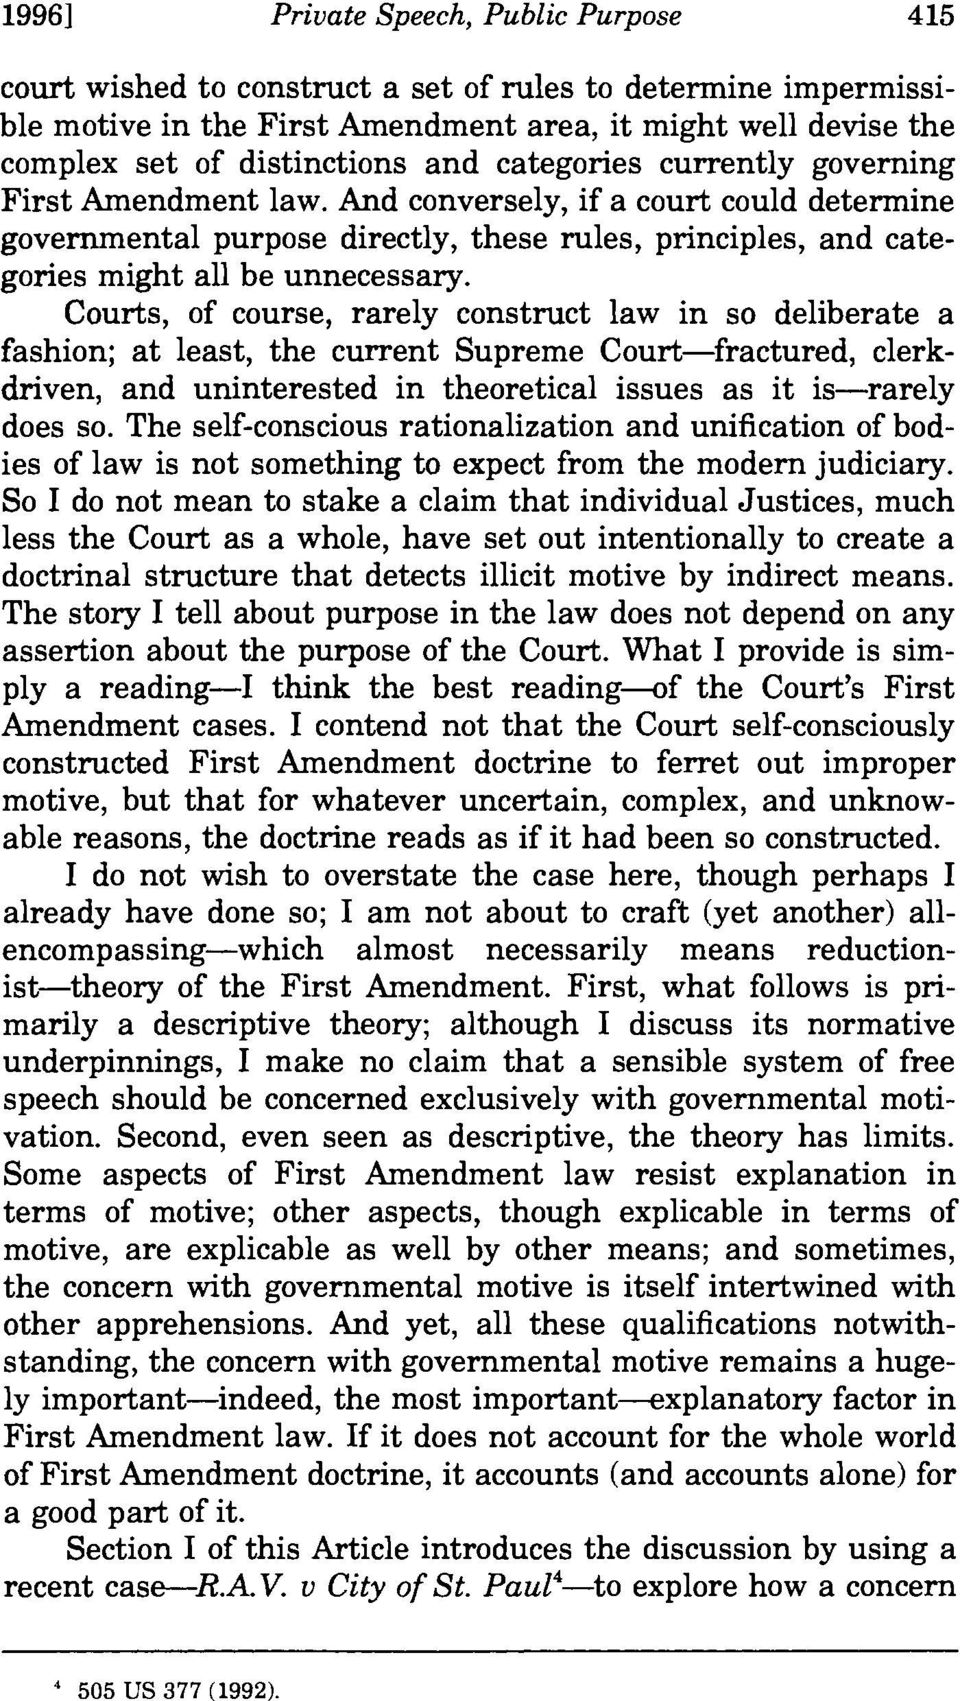 Courts, of course, rarely construct law in so deliberate a fashion; at least, the current Supreme Court-fractured, clerkdriven, and uninterested in theoretical issues as it is-rarely does so.